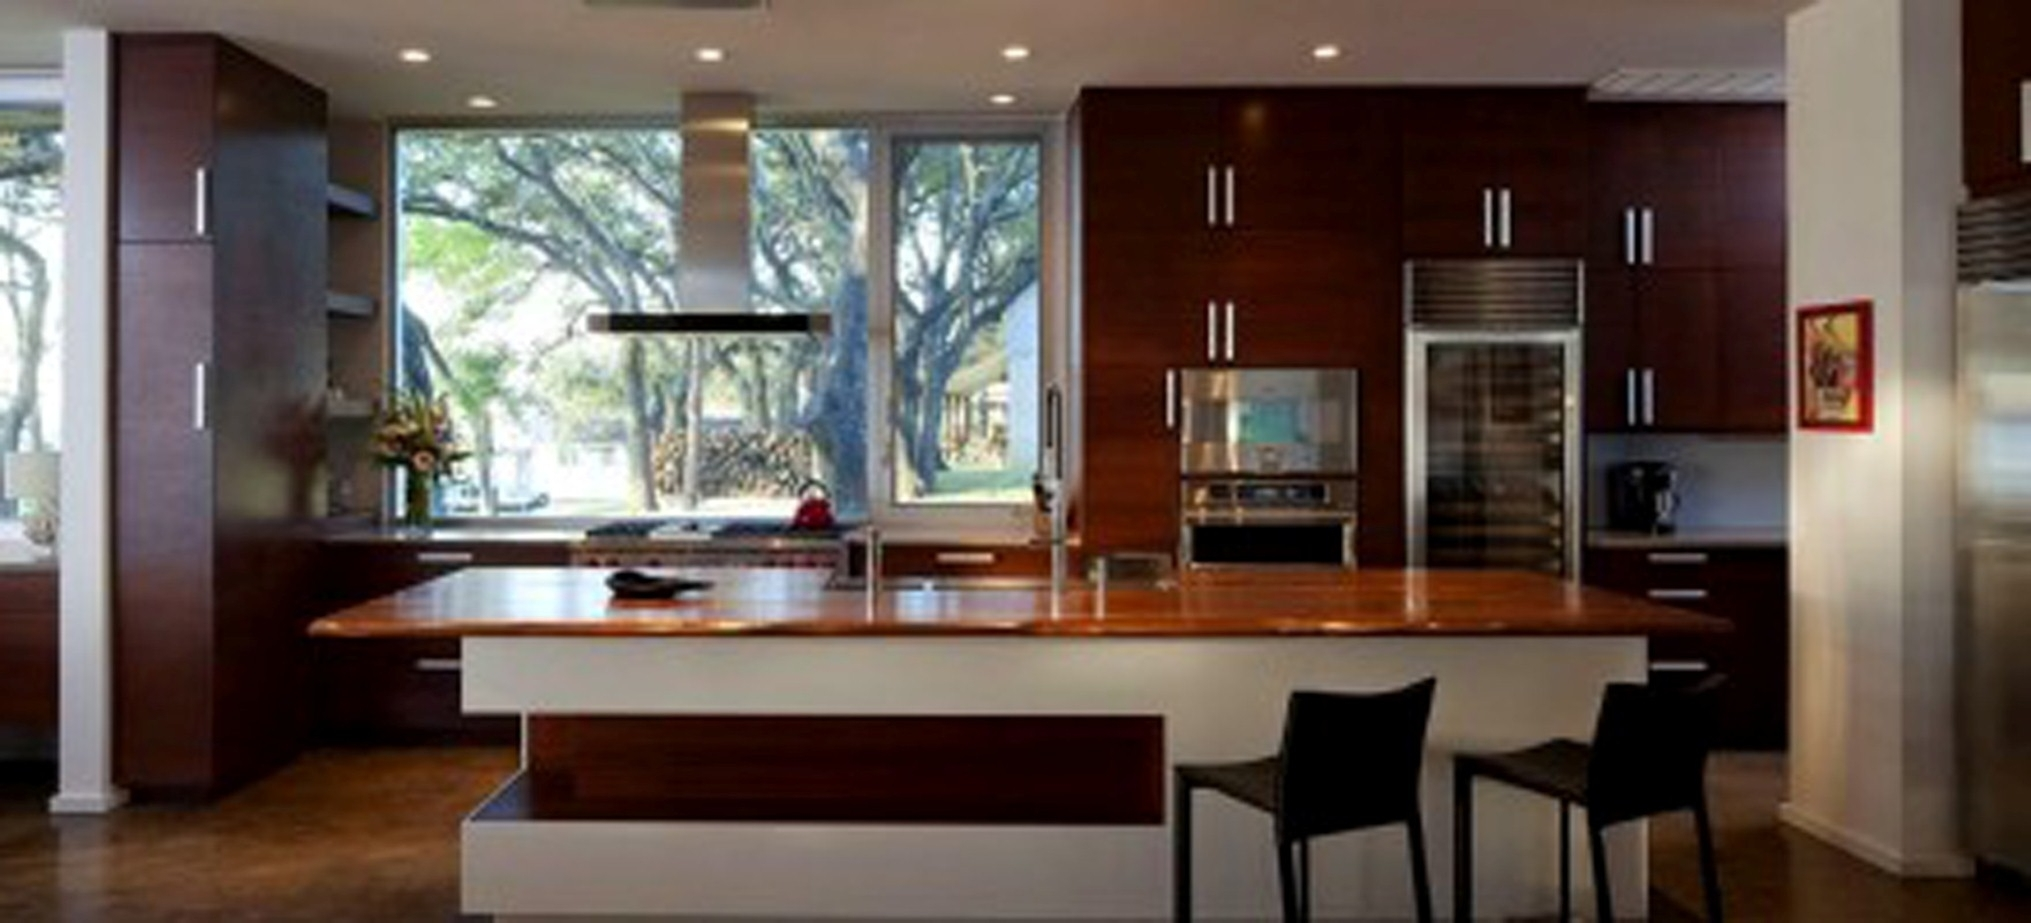 Modern Kitchen Design With Fabulous Wood Countertop Decor Also Handsome Black Seating Design (View 9 of 31)